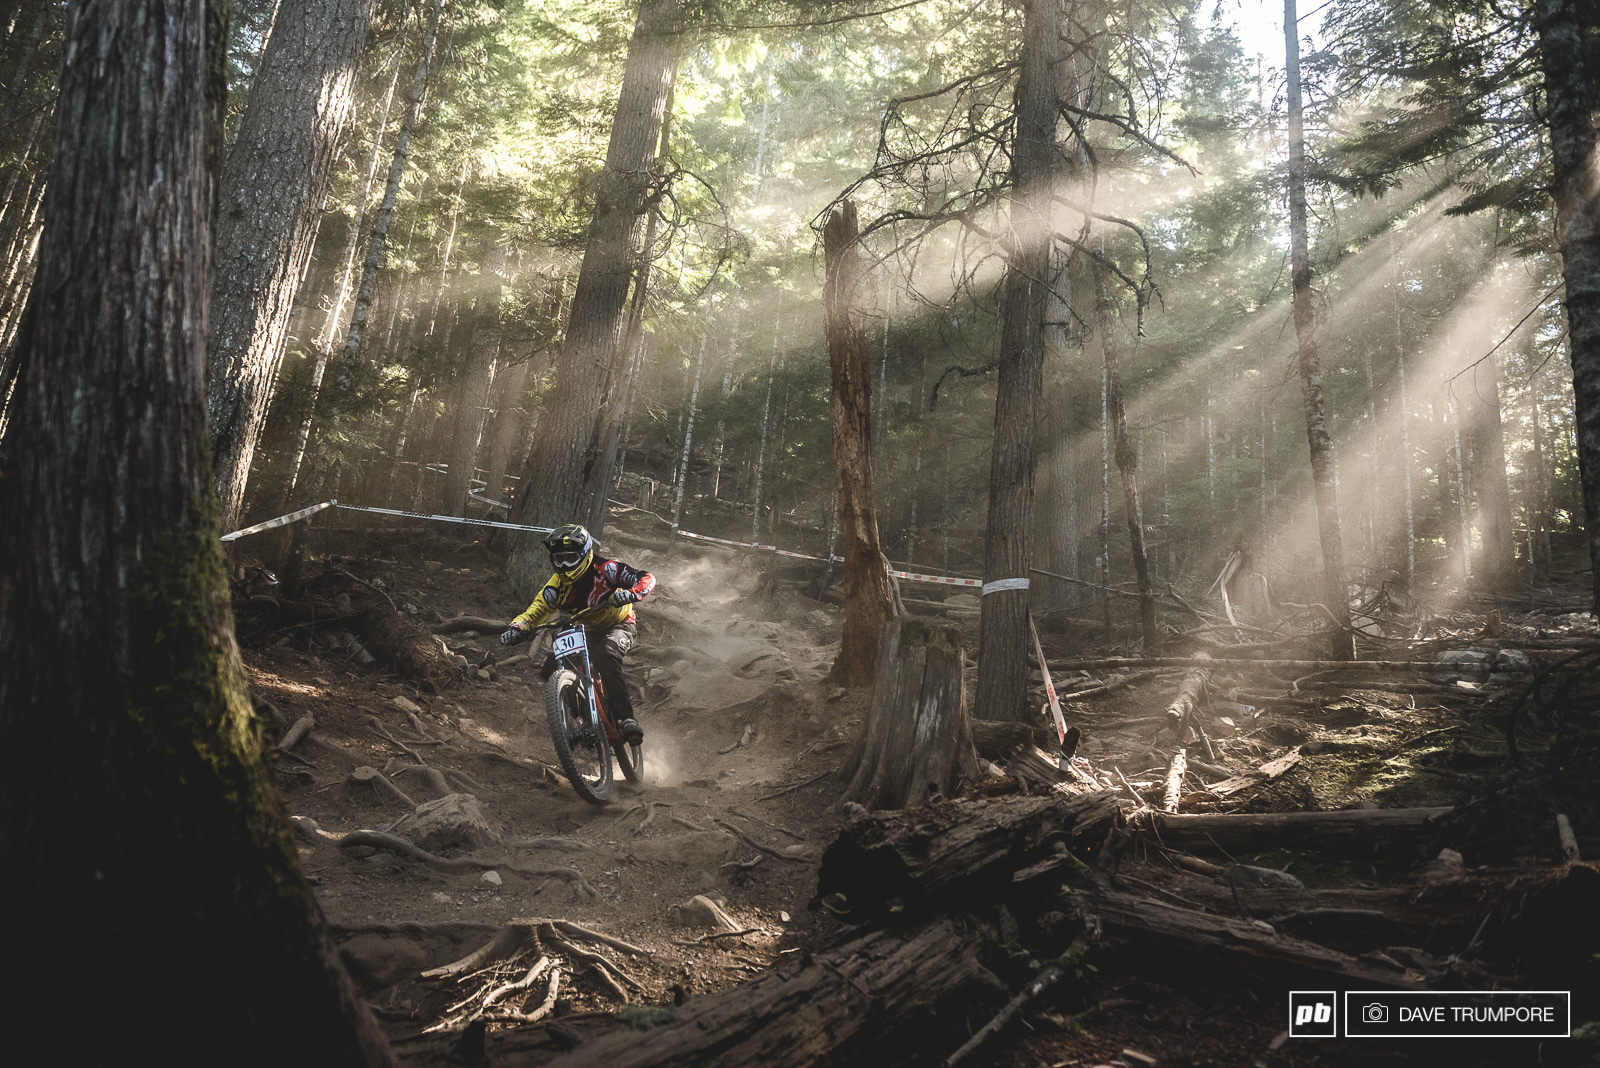 Alexandre Fayolle sends it straight down the main line. Nothing fancy and way to fast to even notice the epic light firing through the lower woods.